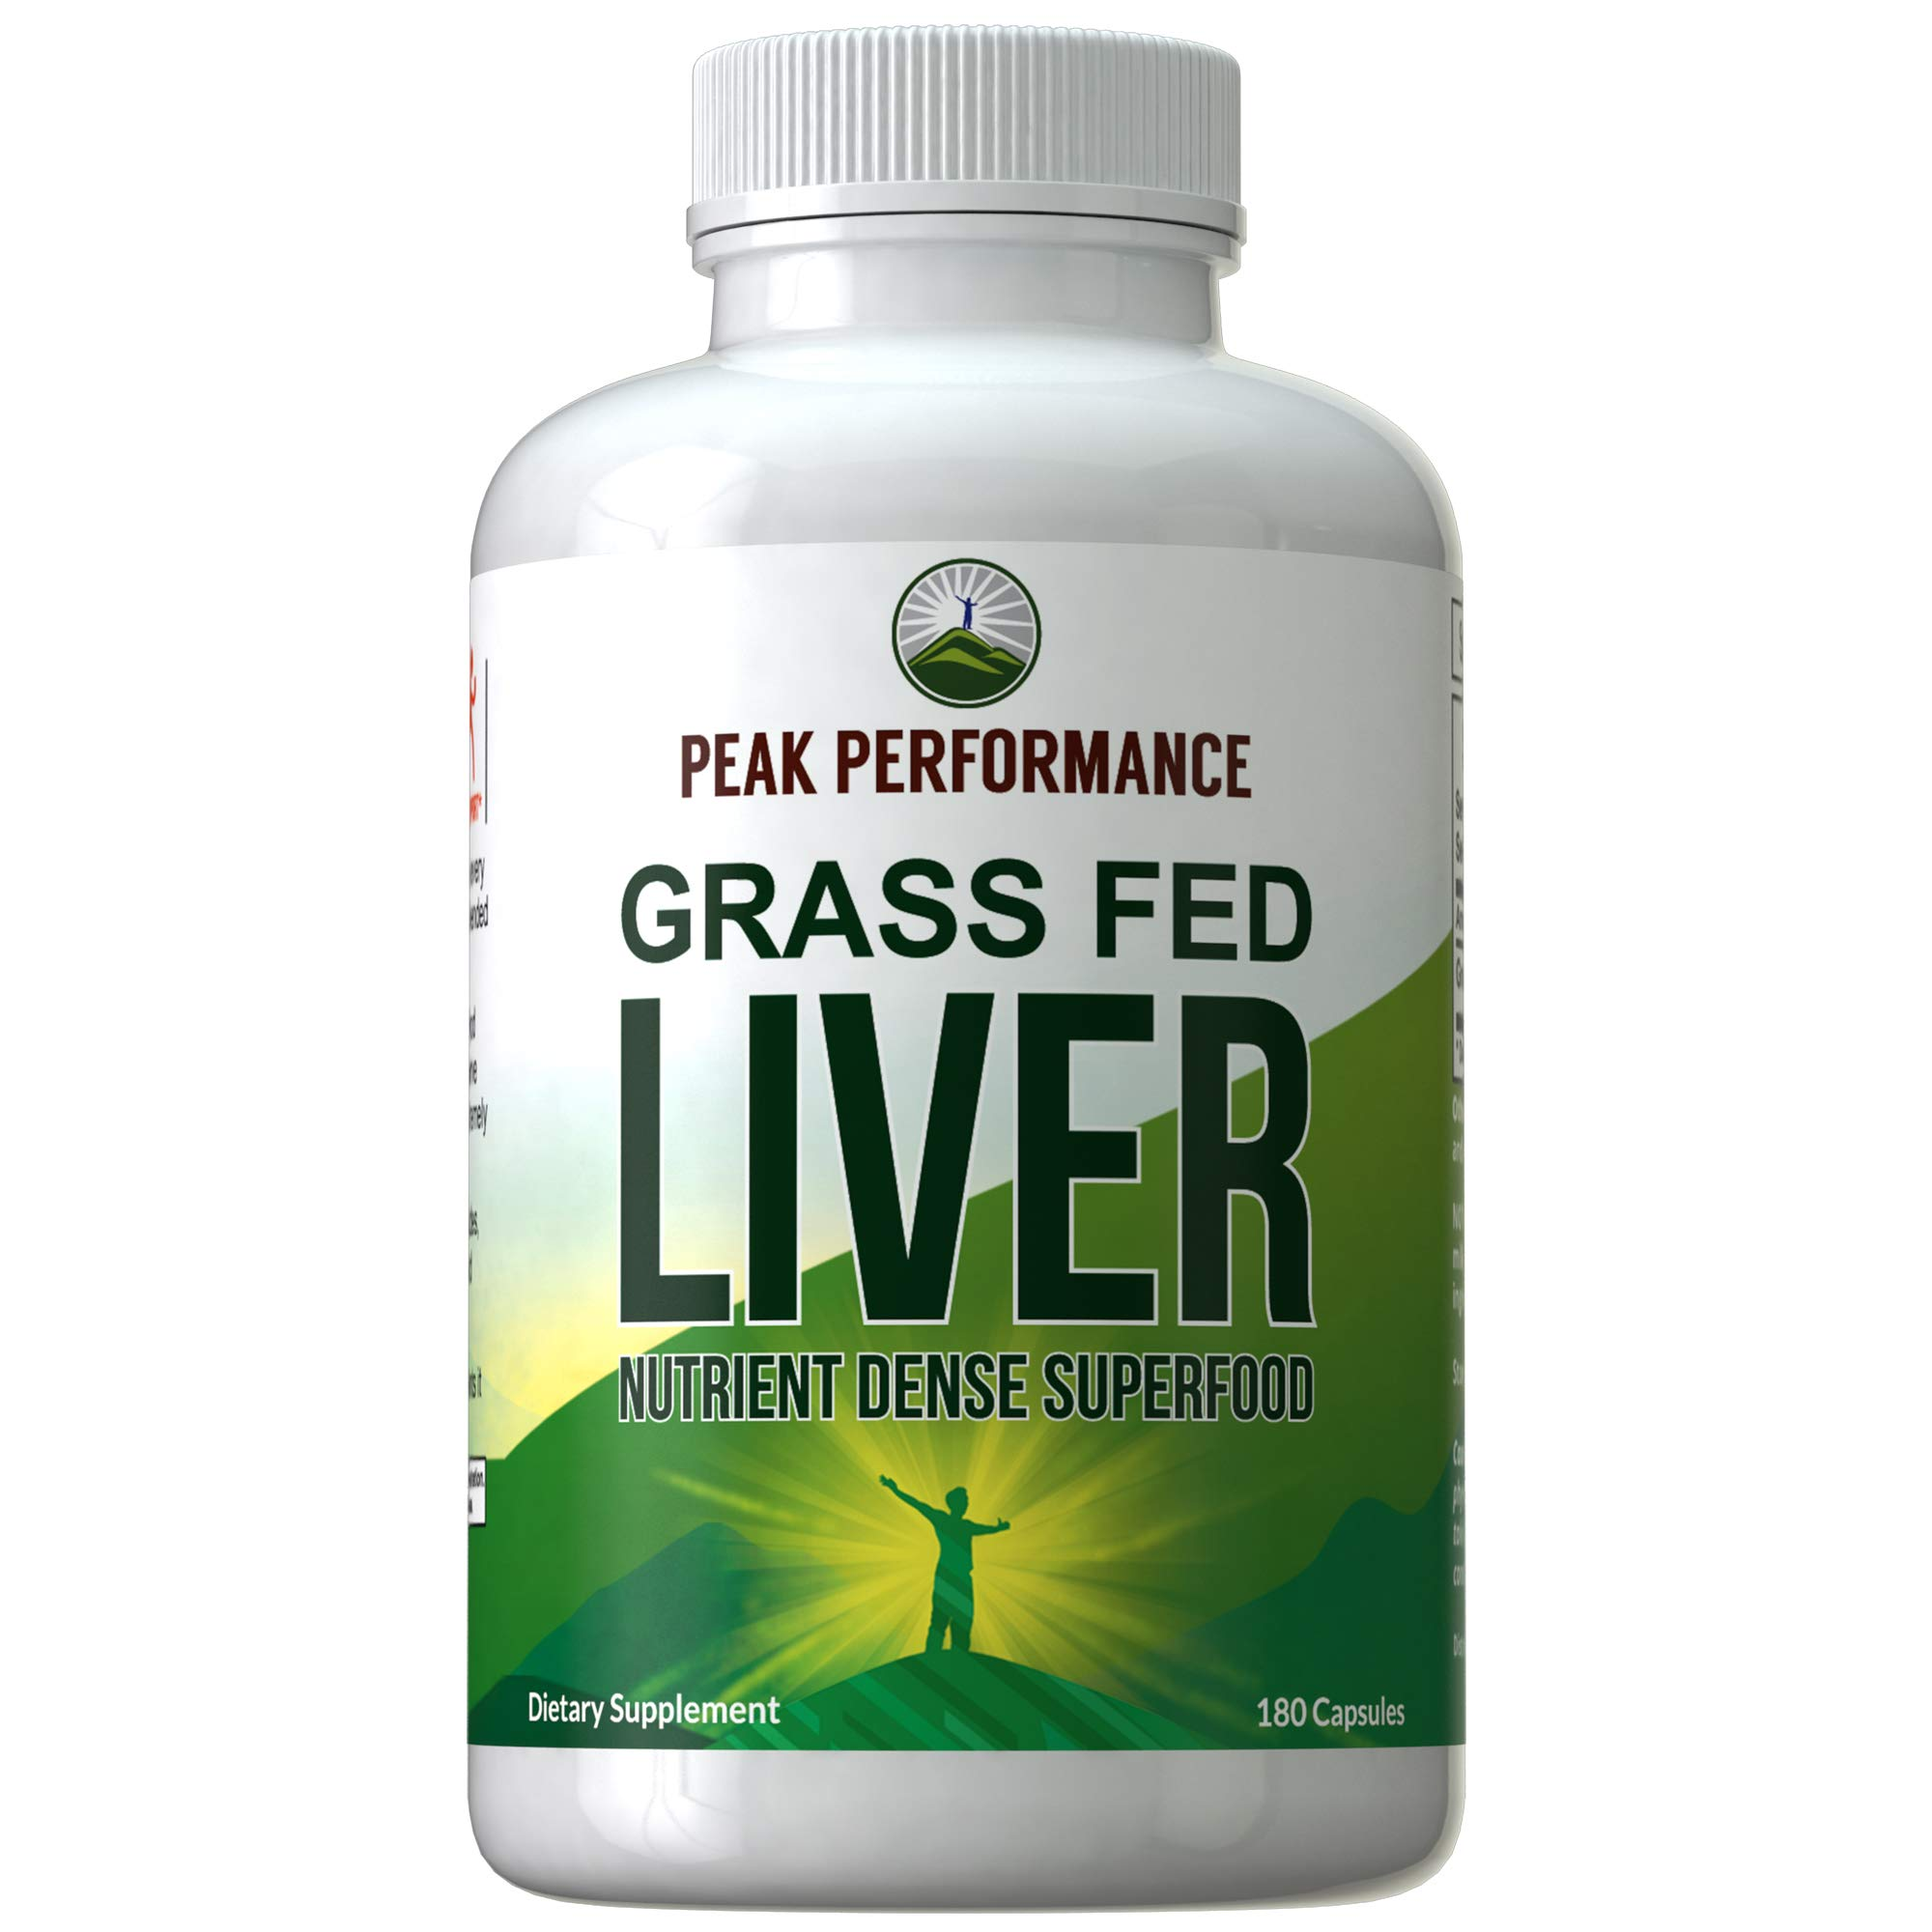 Grass Fed Desiccated Beef Liver Supplement by Peak Performance. 180 Capsules of Grassfed Liver Superfood Pills Rich in Natural Iron, Vitamins, Amino Acids. Great for Adrenal and Immune Support by Peak Performance